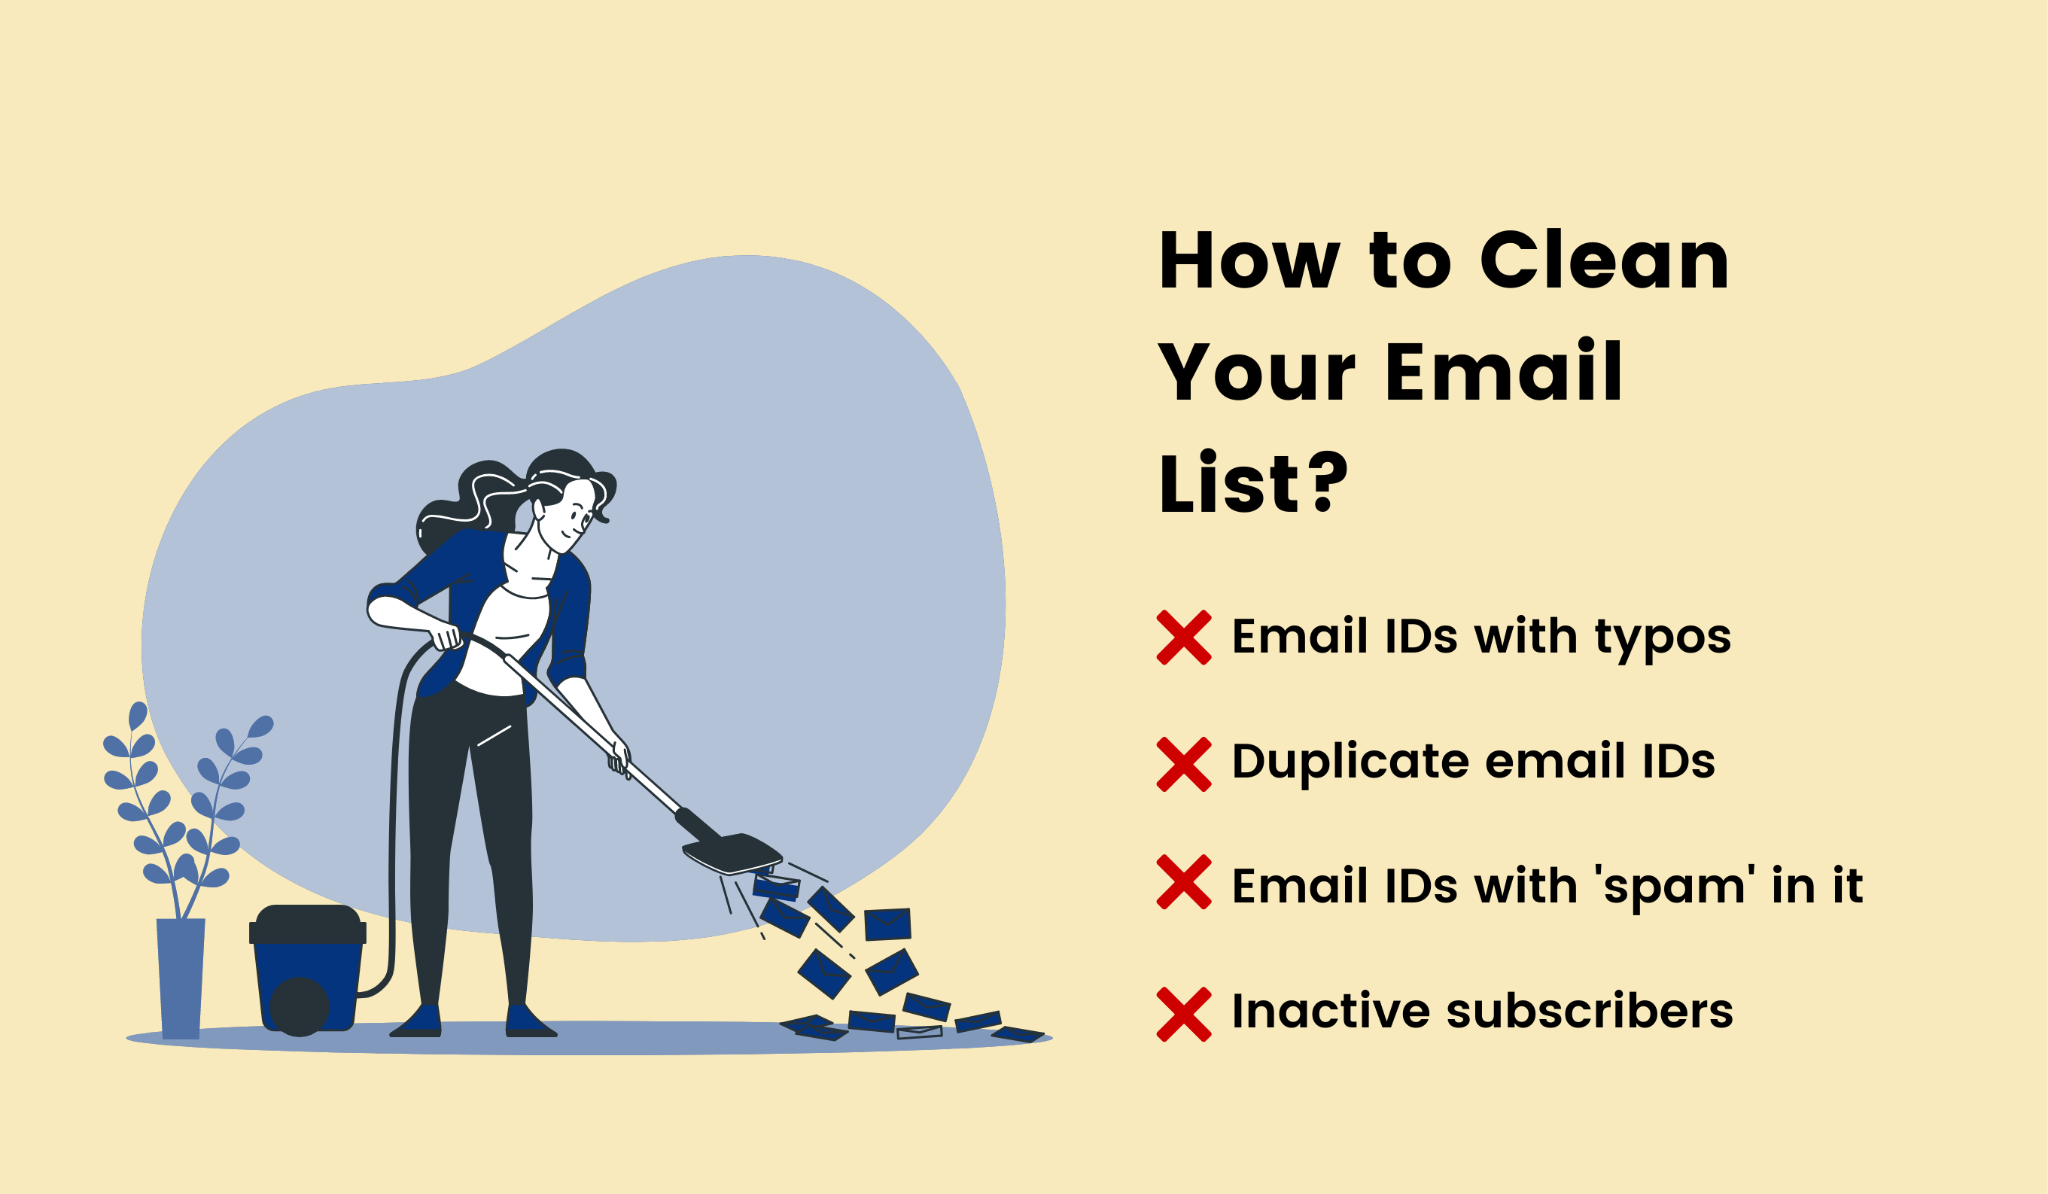 4 tips for cleaning your email list